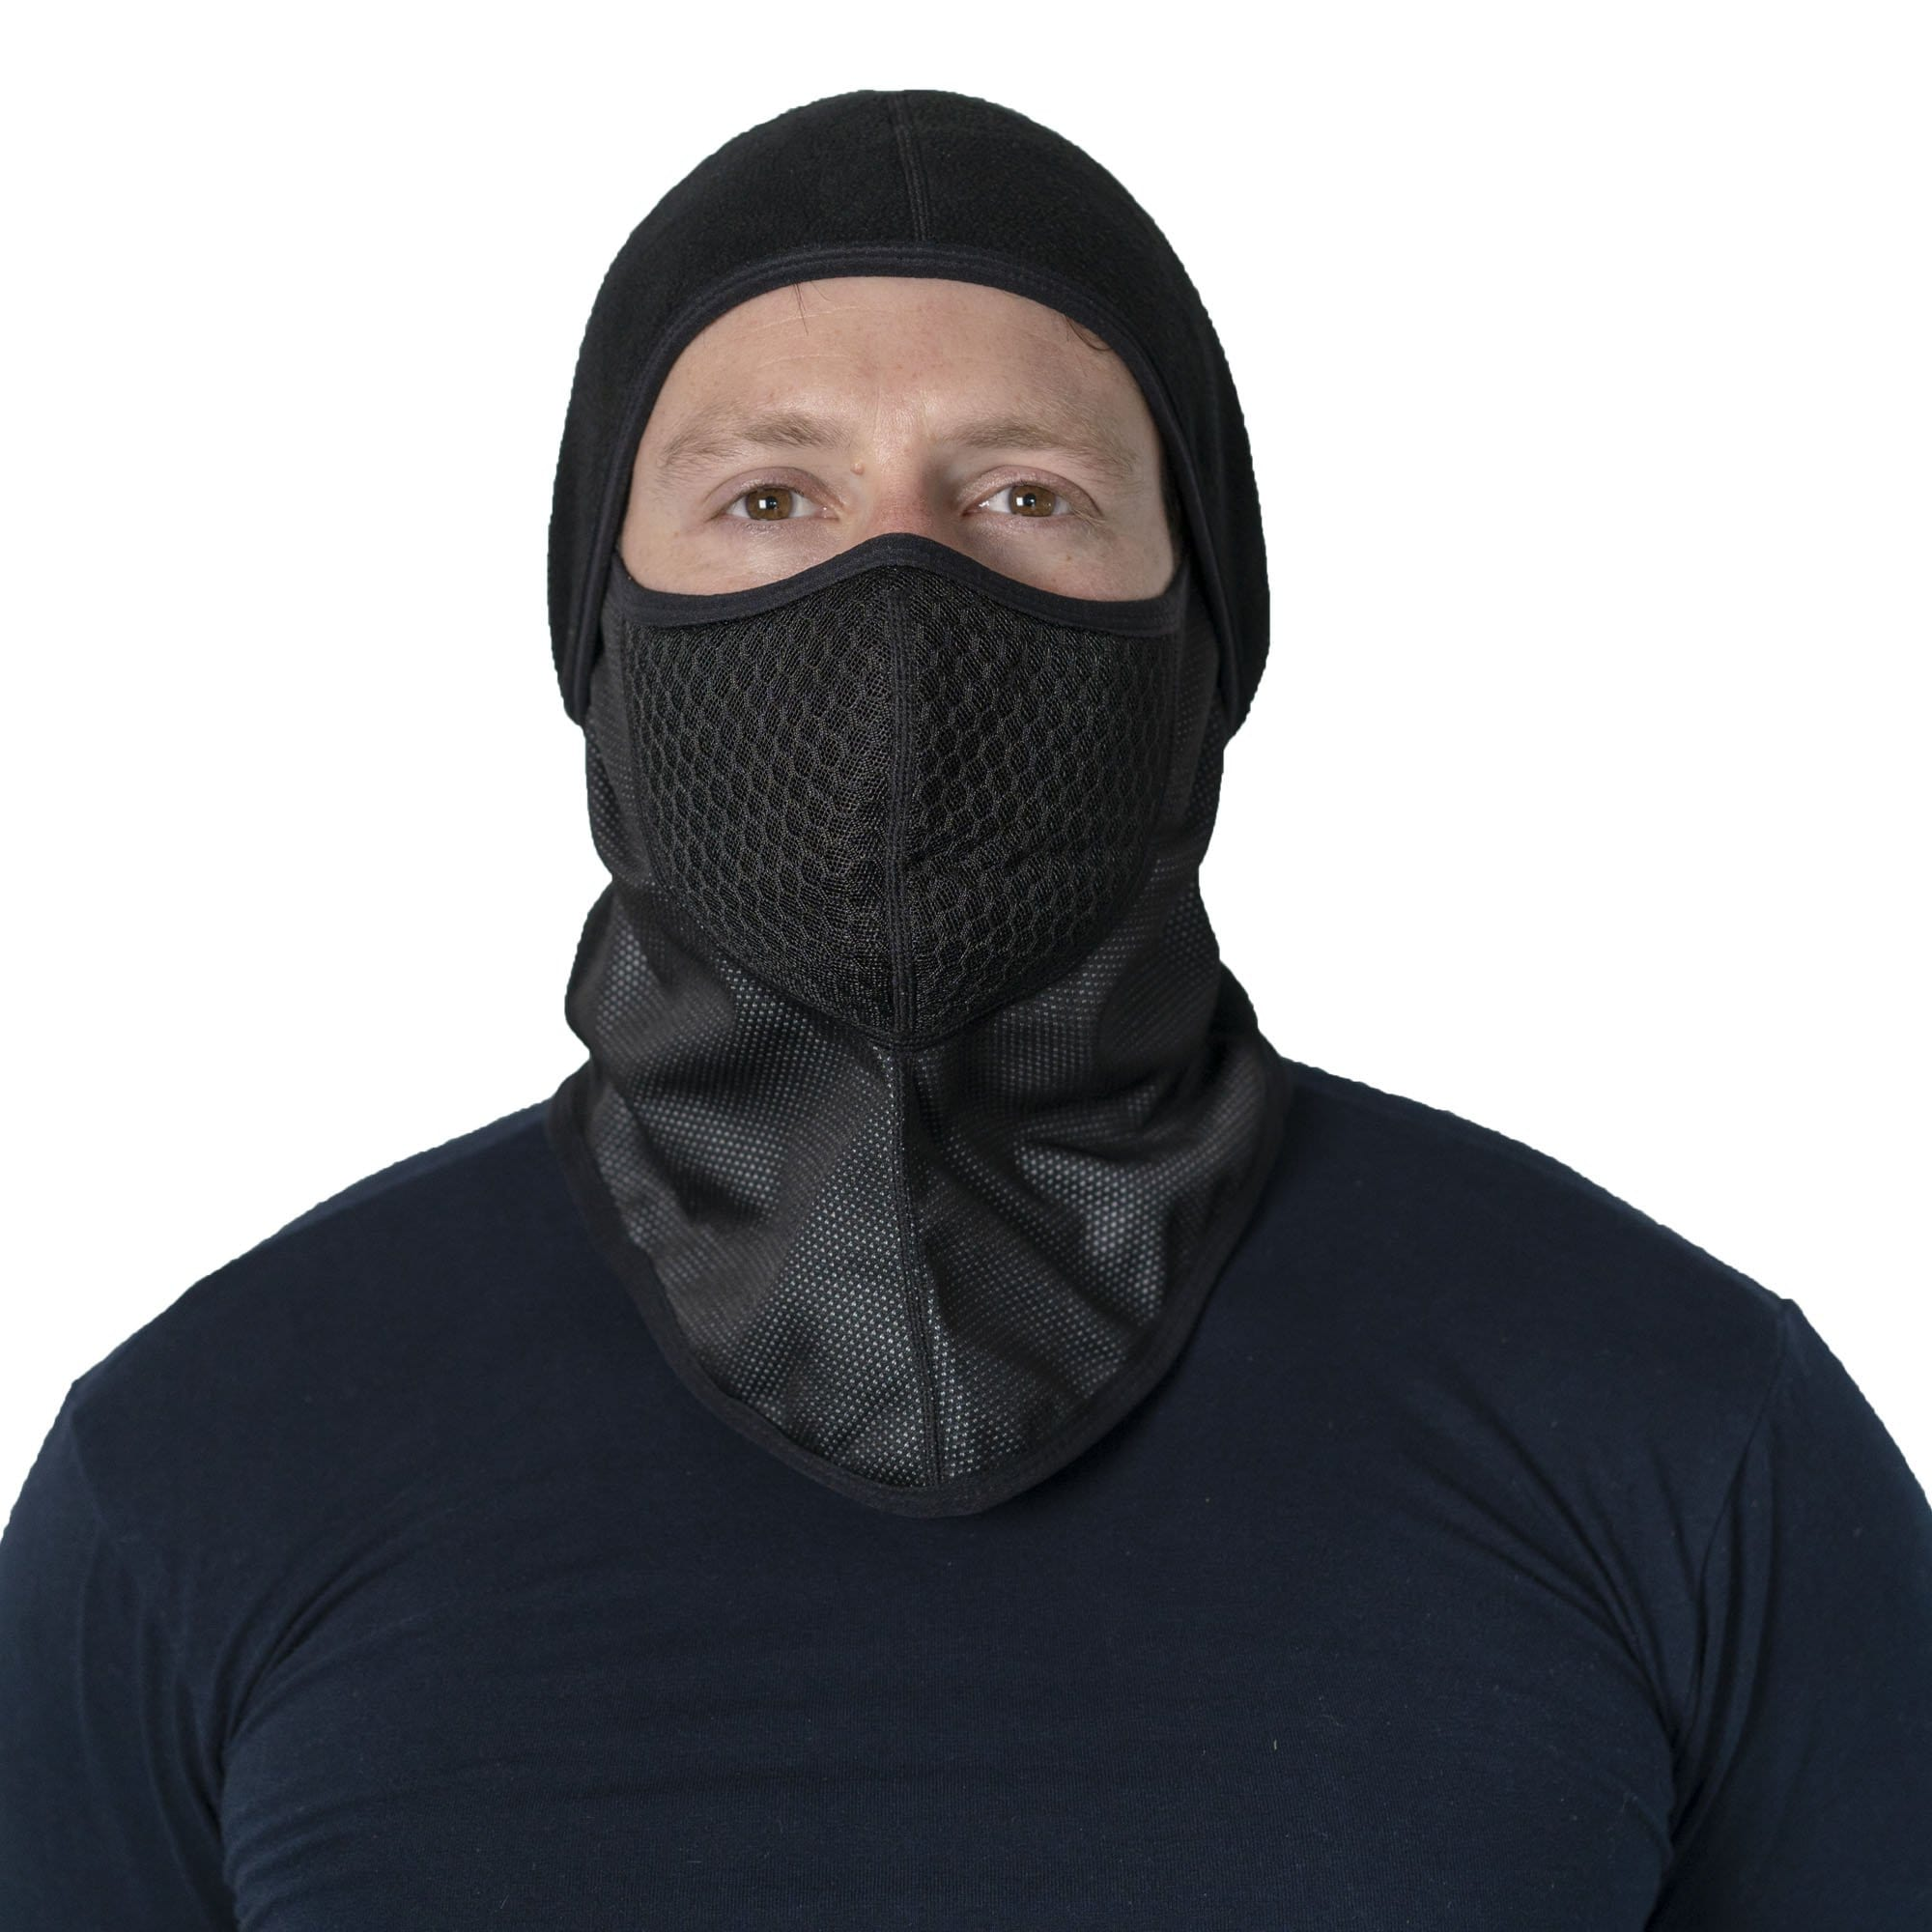 Balaclava with Replaceable Air Filter, All Purpose, Black - 72HRS